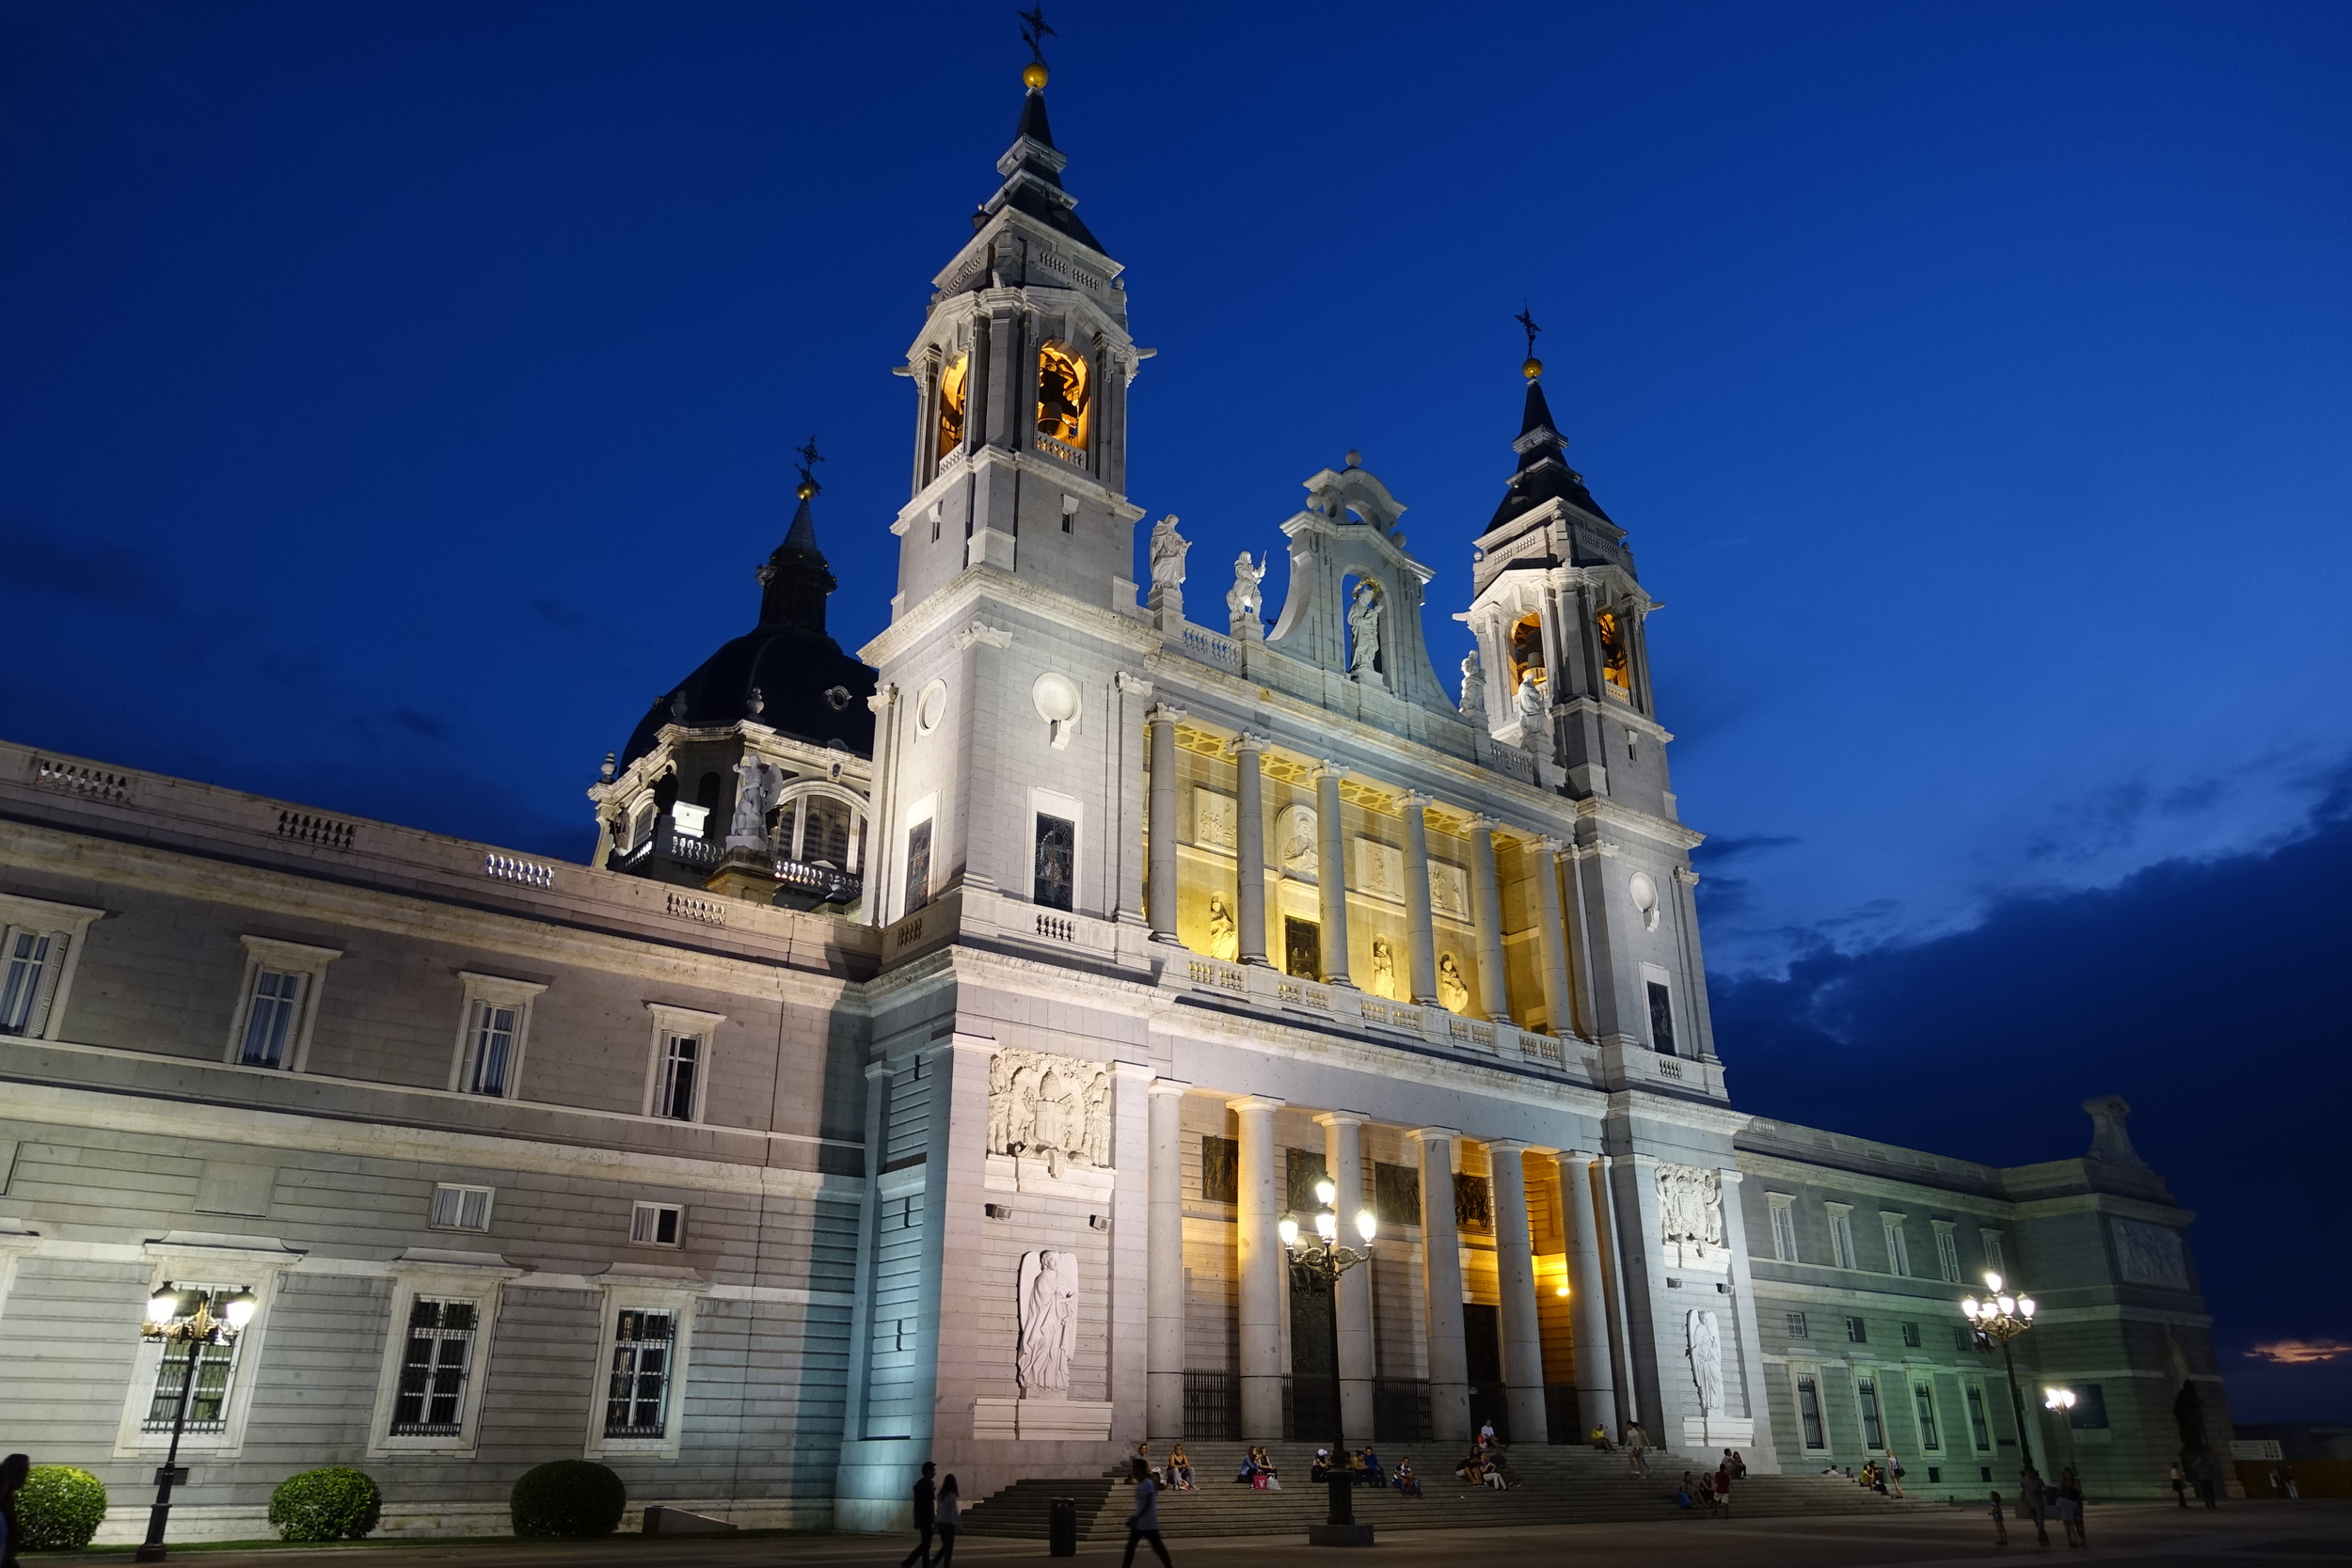 Catedral de la Almudena, next door to the Palacio Real (Royal Palace) at night - isn't it gorgeous?